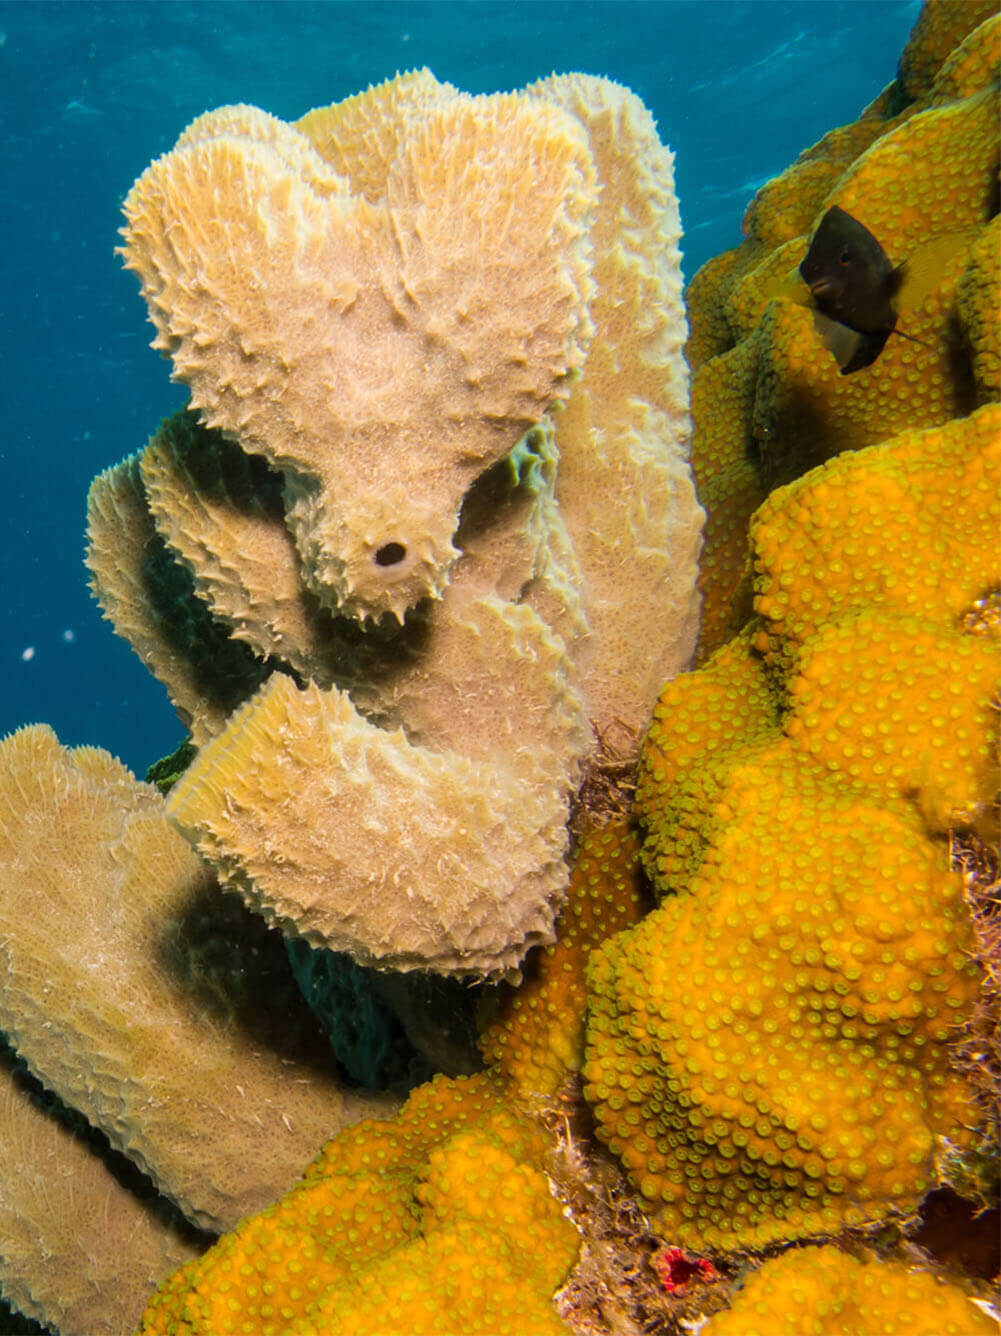 God's Creative Power Behind the Brainless Genius of the Sponge Article Image